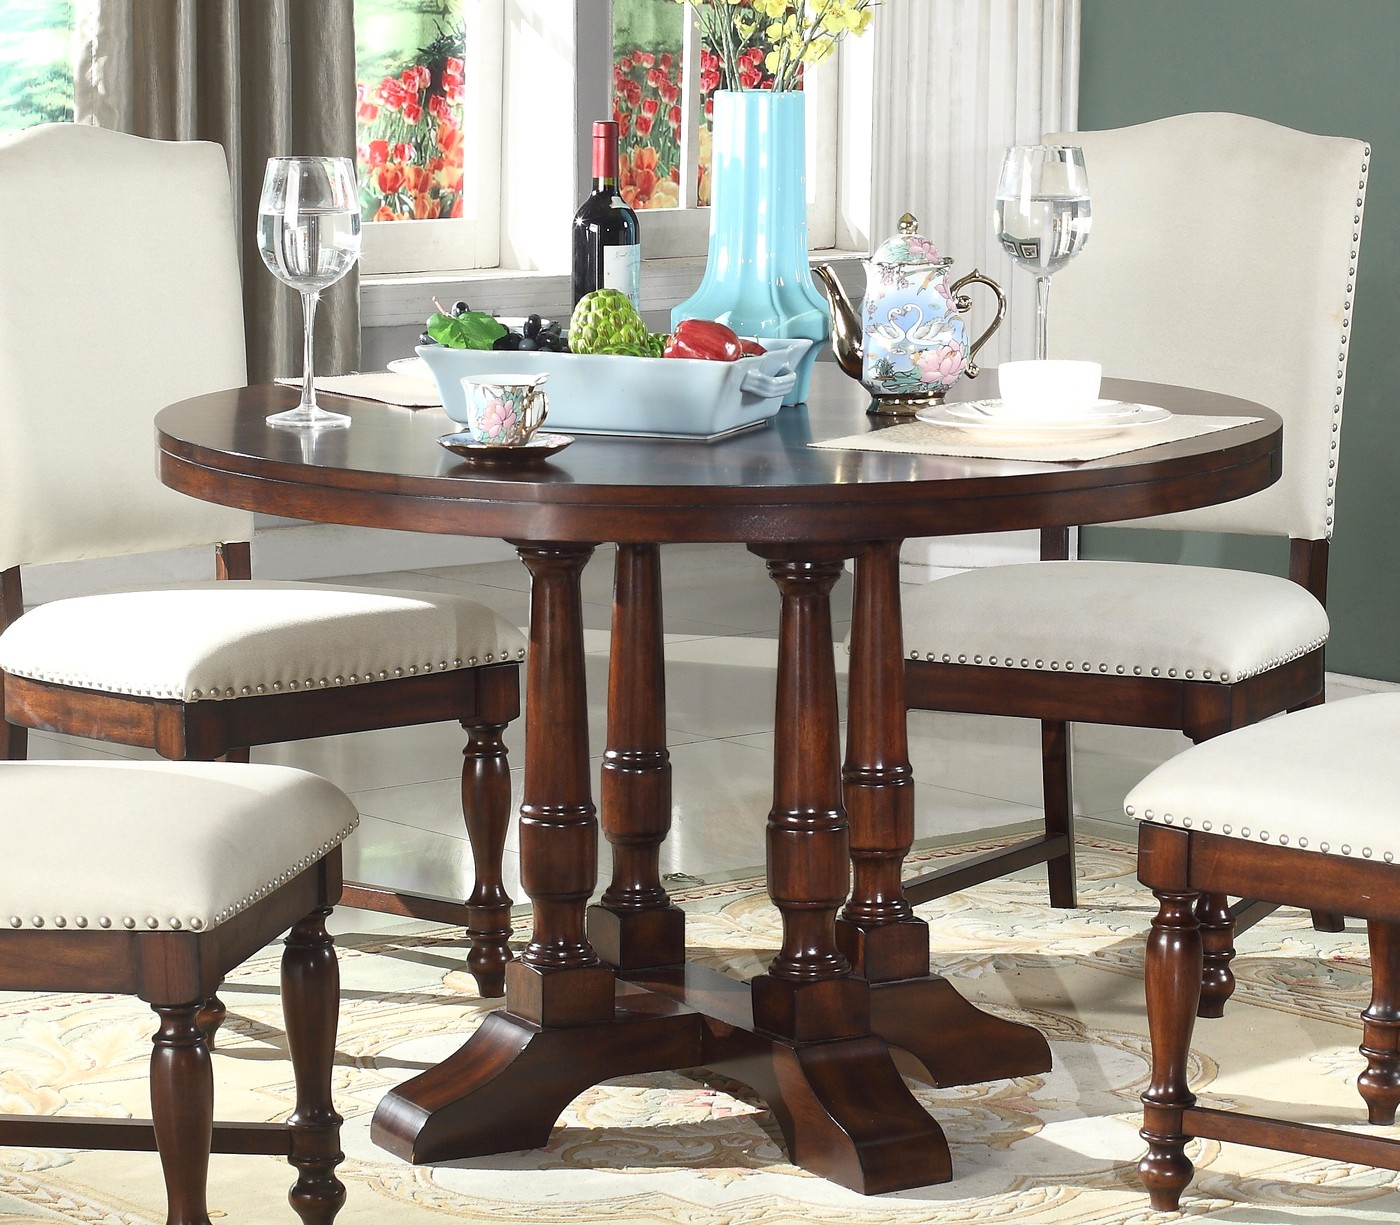 """Charlotte Classic 48"""" Round Pedestal Dining Table In Rich For Recent Villani Pedestal Dining Tables (View 3 of 15)"""